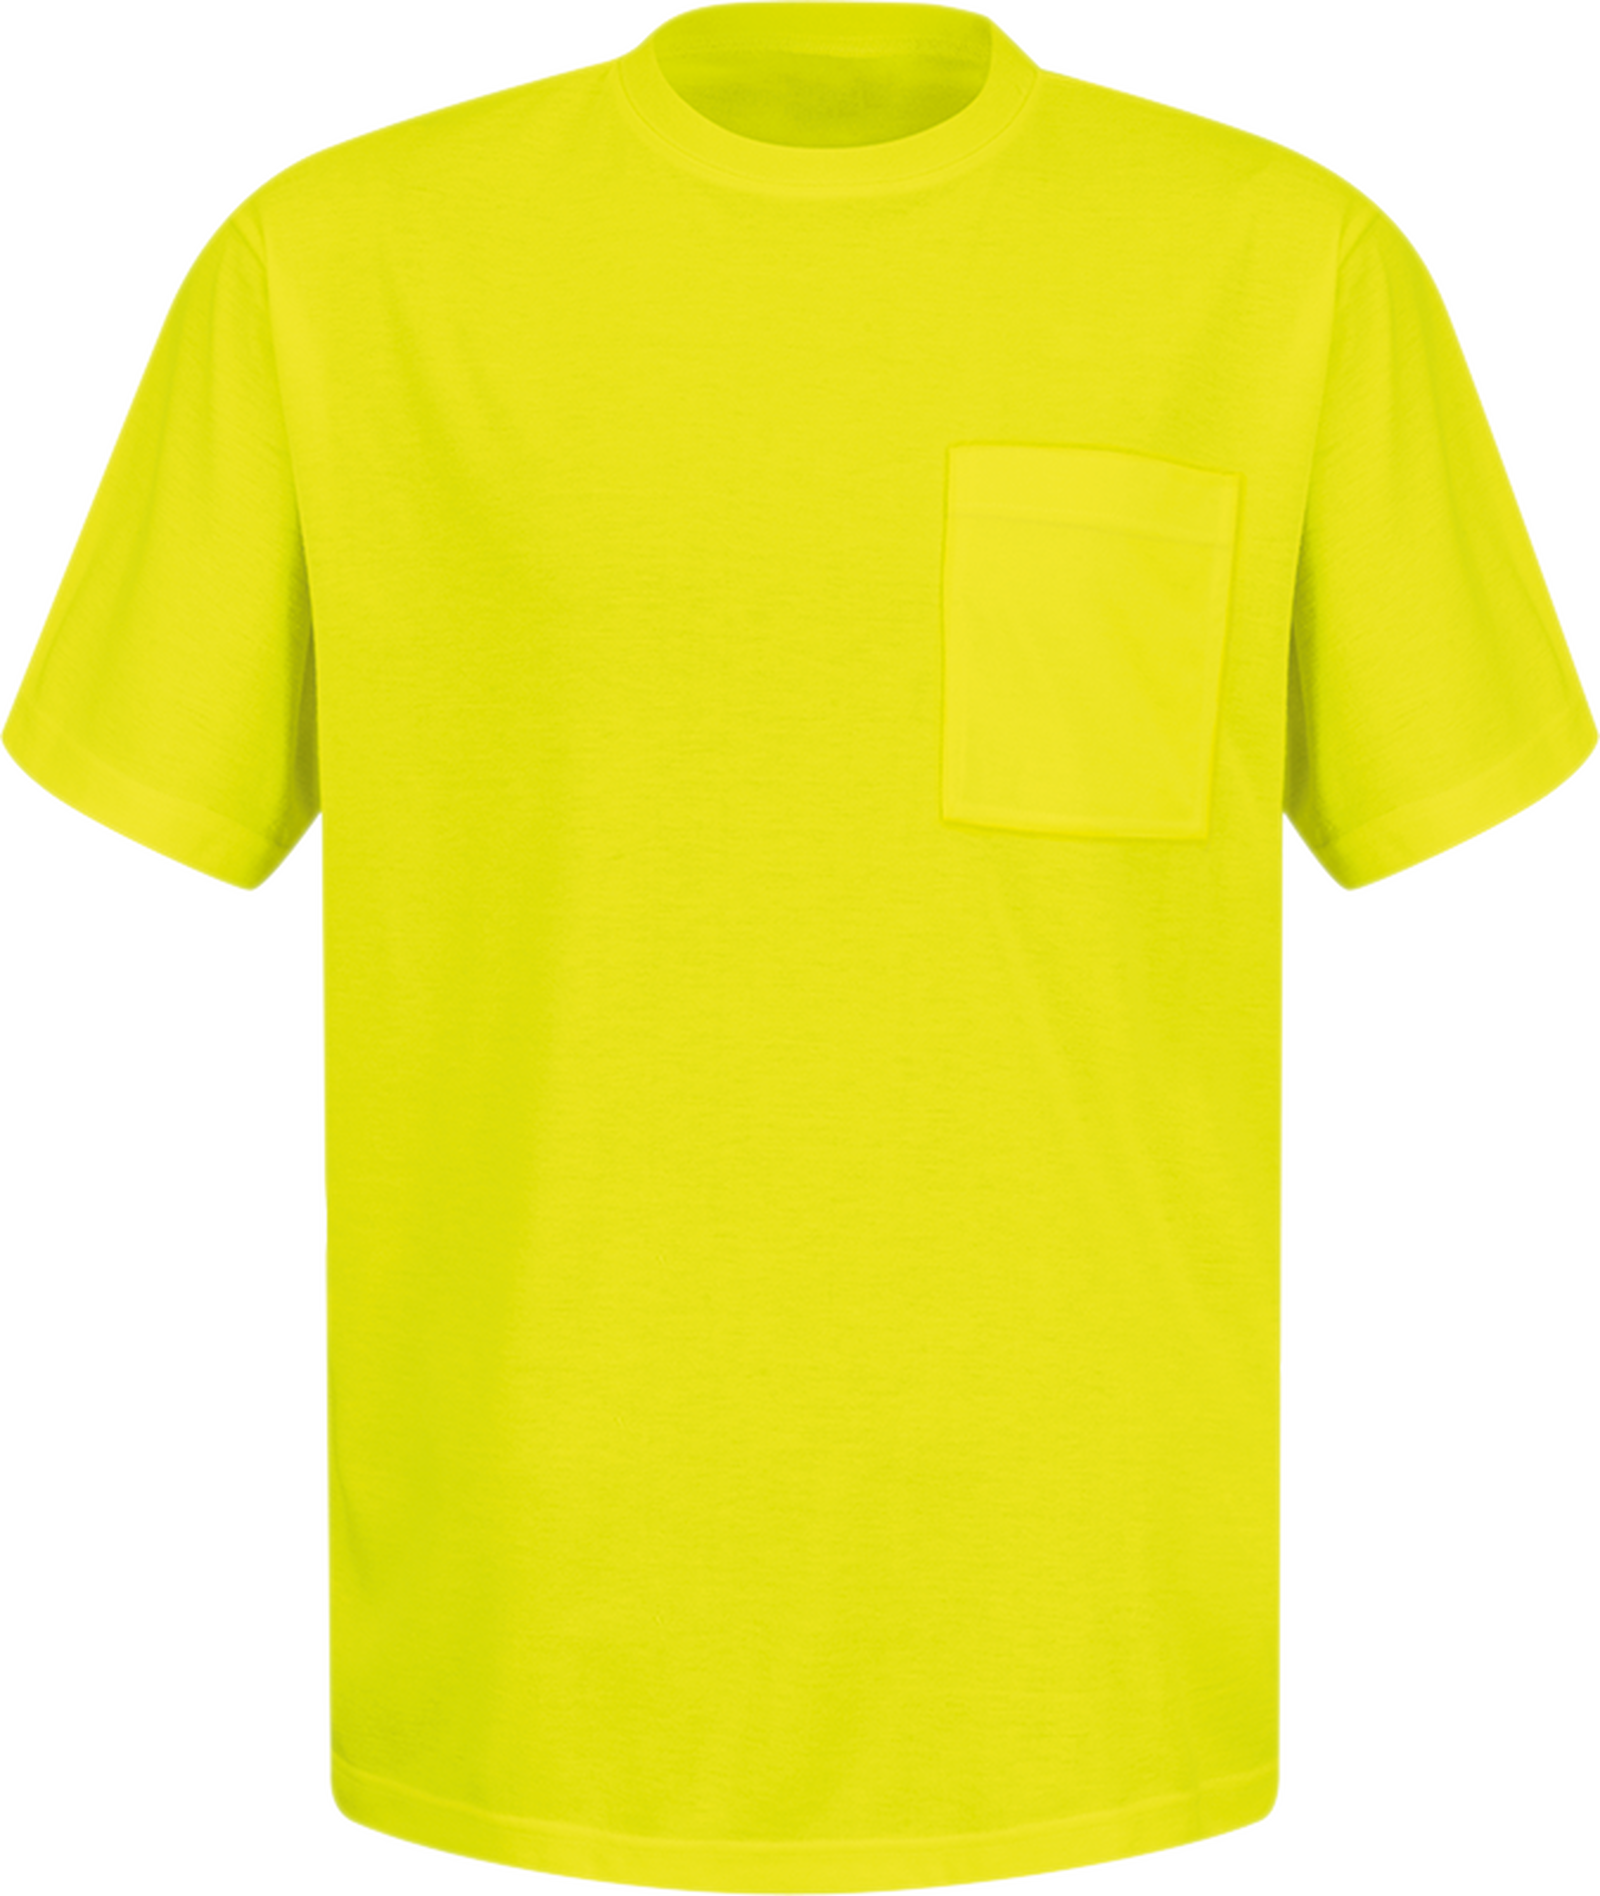 Enhanced Short Sleeve Visibility T-Shirt